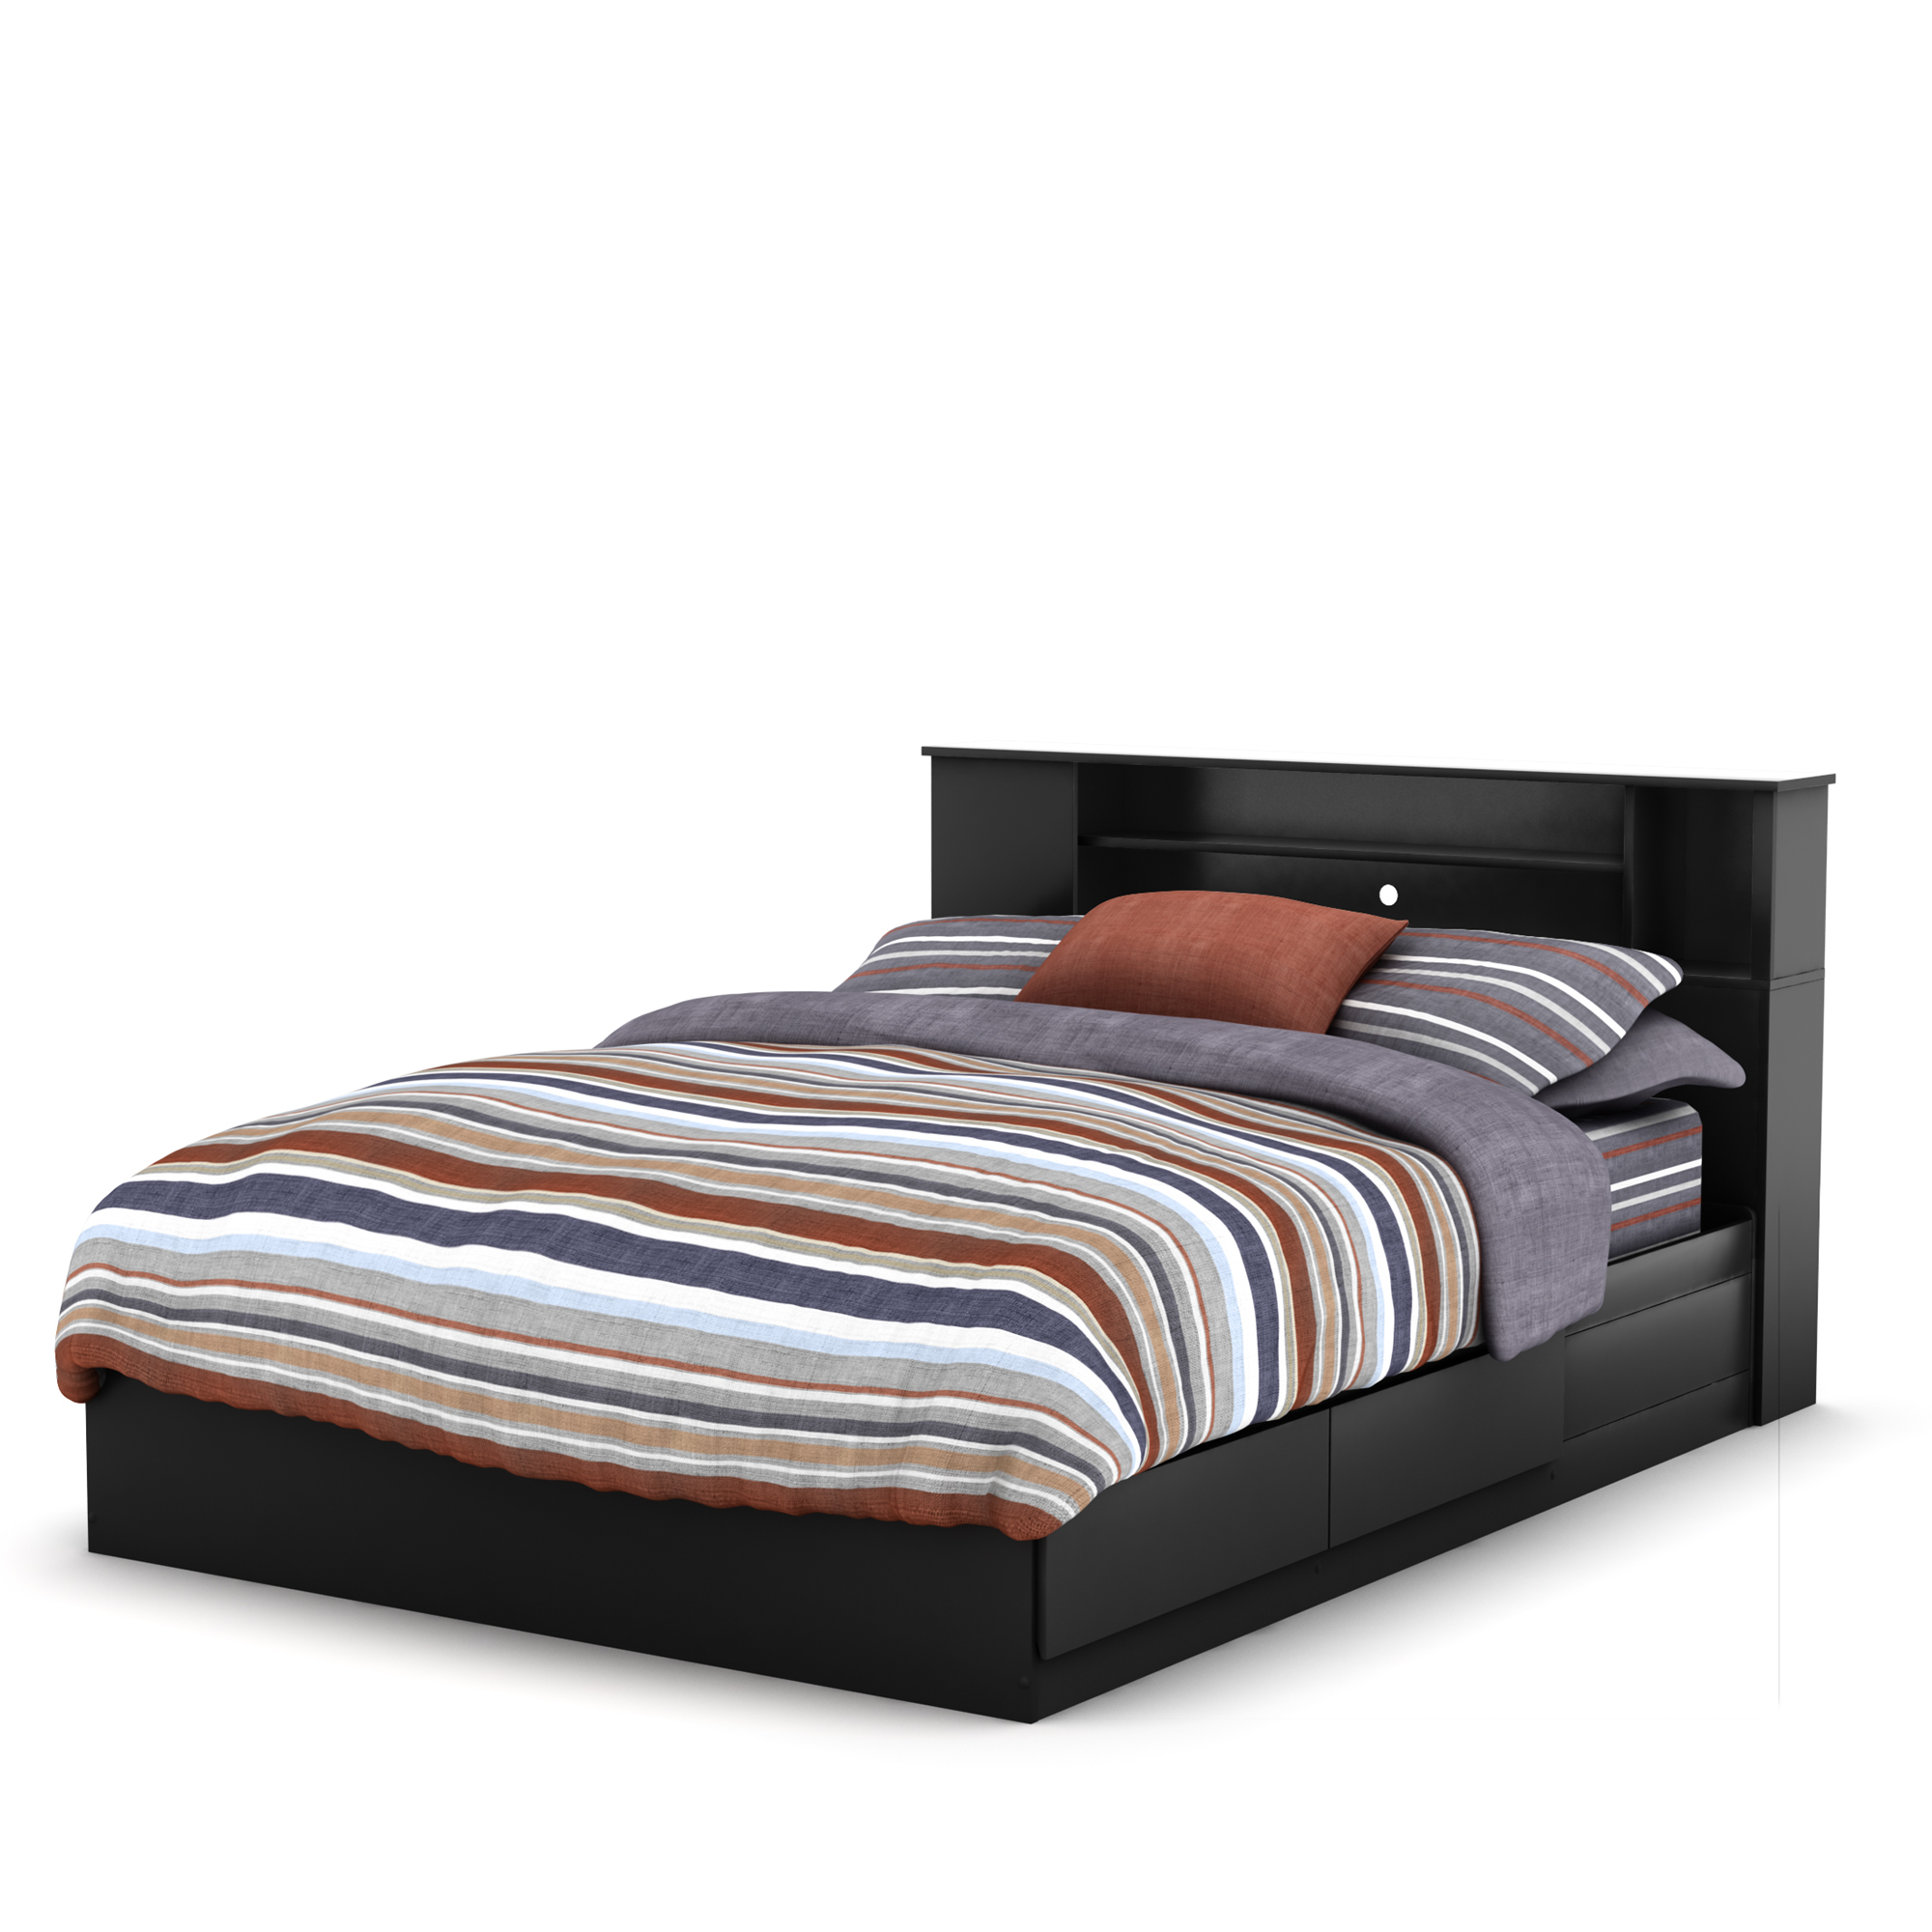 60 in. Queen Mates Bed with Bookcase Headboard in Pure Black